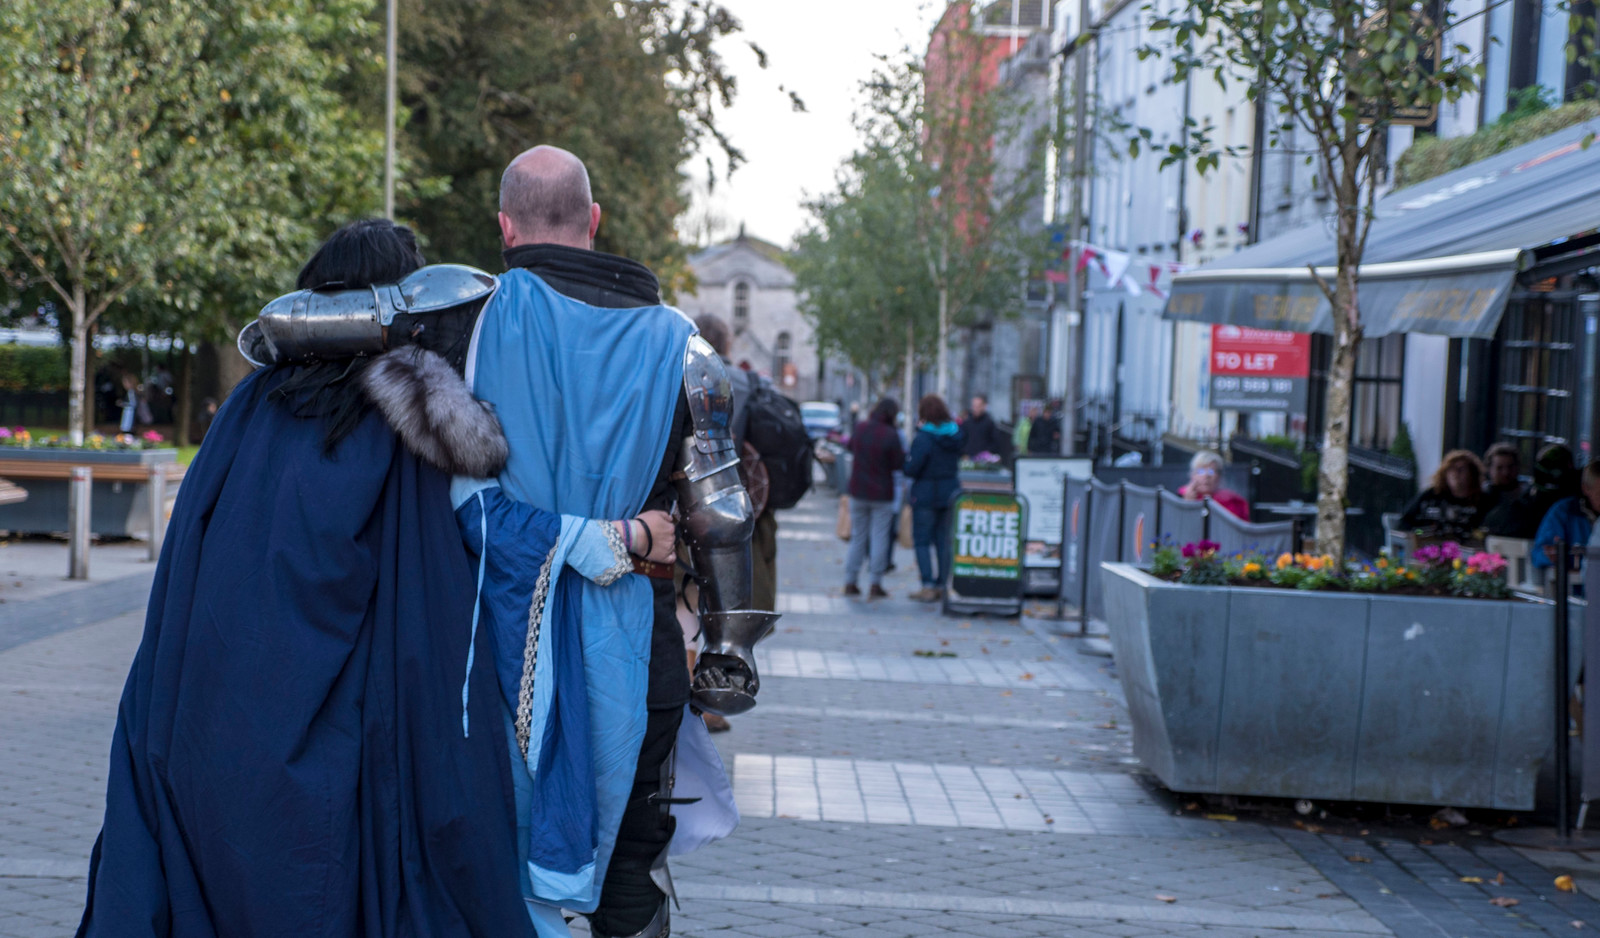 Knights in love in Galway - One day in Galway Itinerary